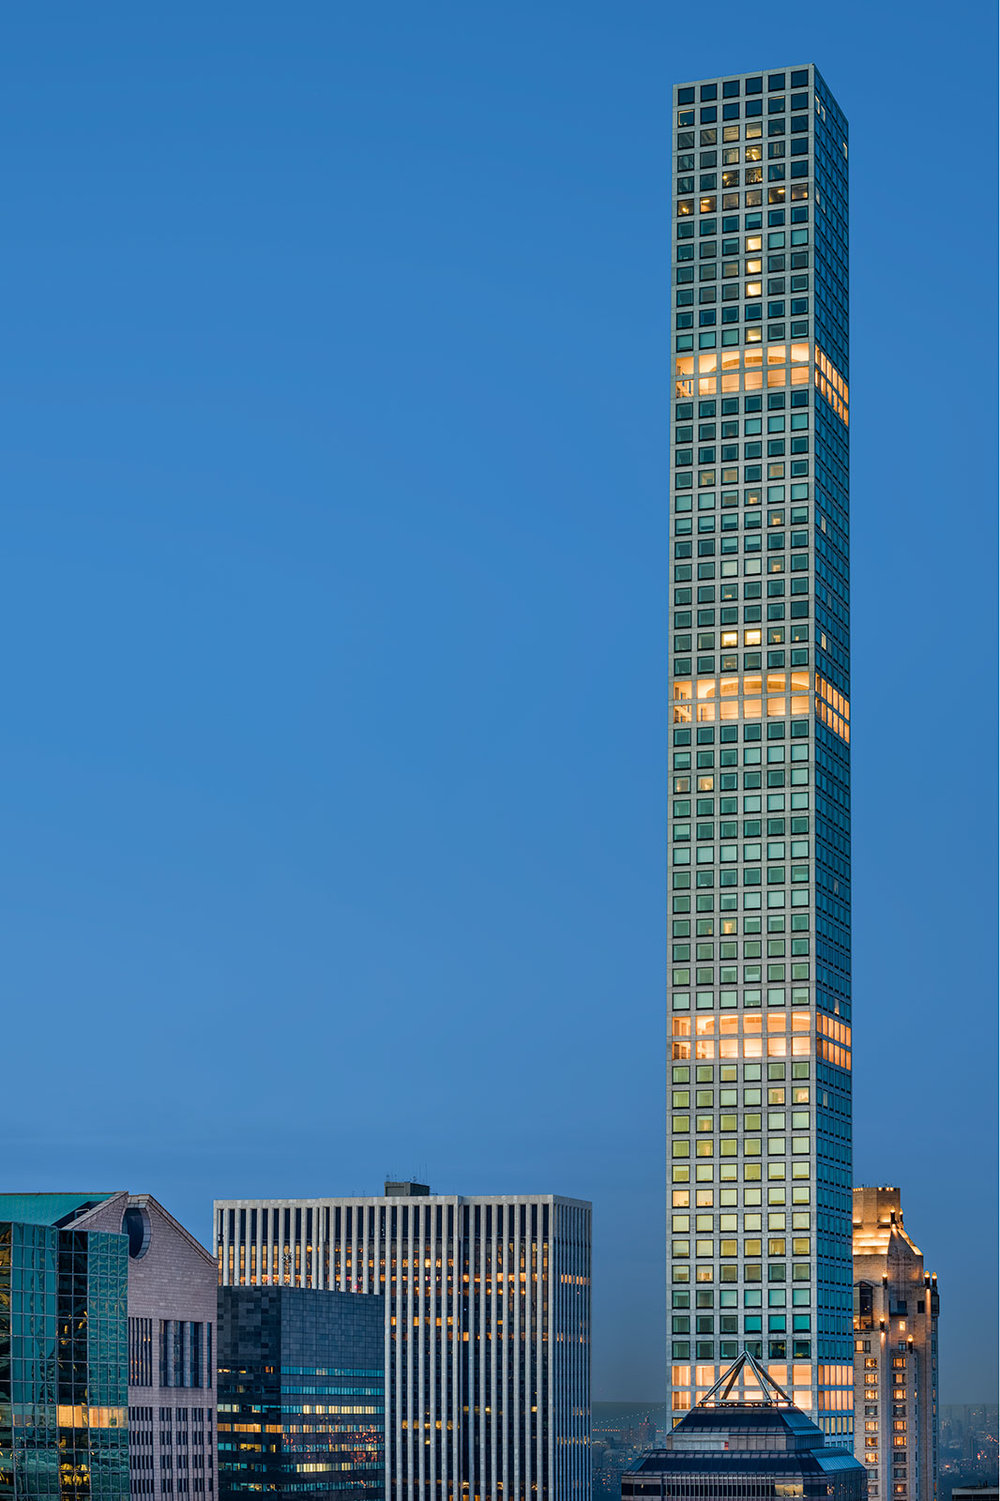 432 Park Avenue, New York